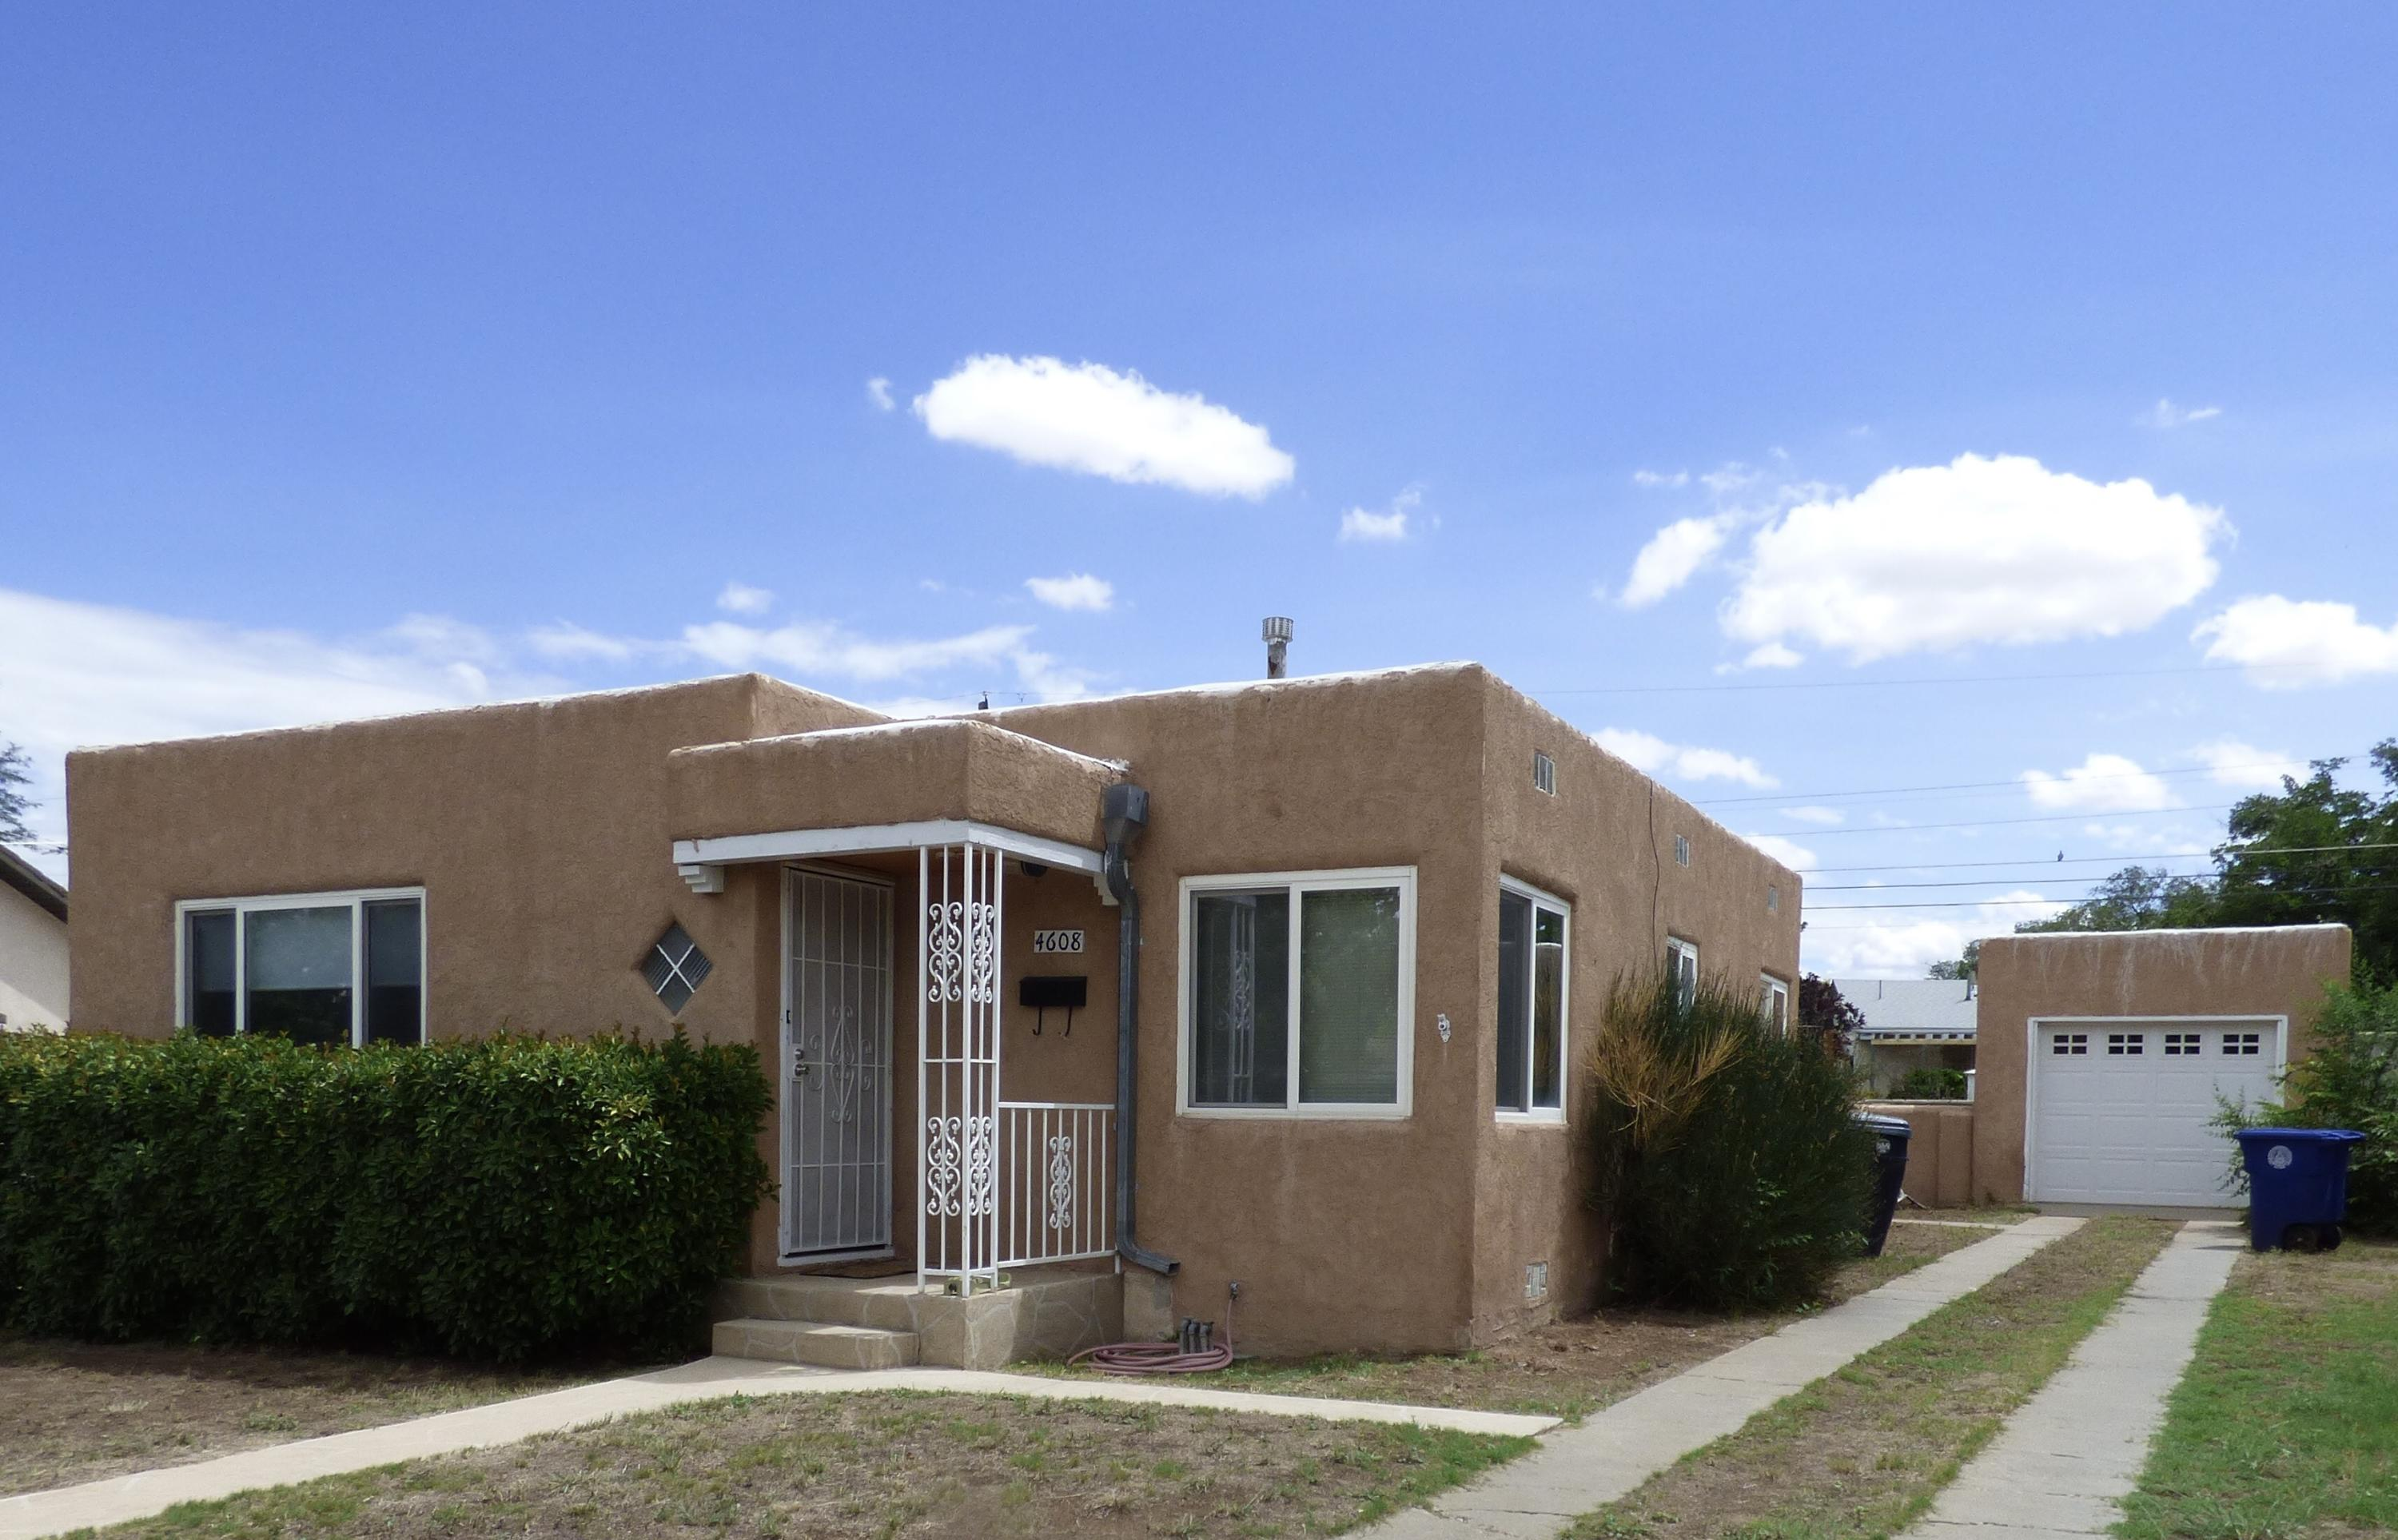 Grab it NOW!Cute 3 BR 1 and 1/2 BA Pueblo style on a large size lot in the heart of popular Ridgecrest/Parkland Hills area.  Plaster walls, coved ceilings, and hardwood floors.  Double pane windows.  New stucco 2021, new roof 2020, H20 heater and forced air furnace in 2016 too.  Detached garage w/storage.  Sooooo much potential at a rapidly disappearing price.